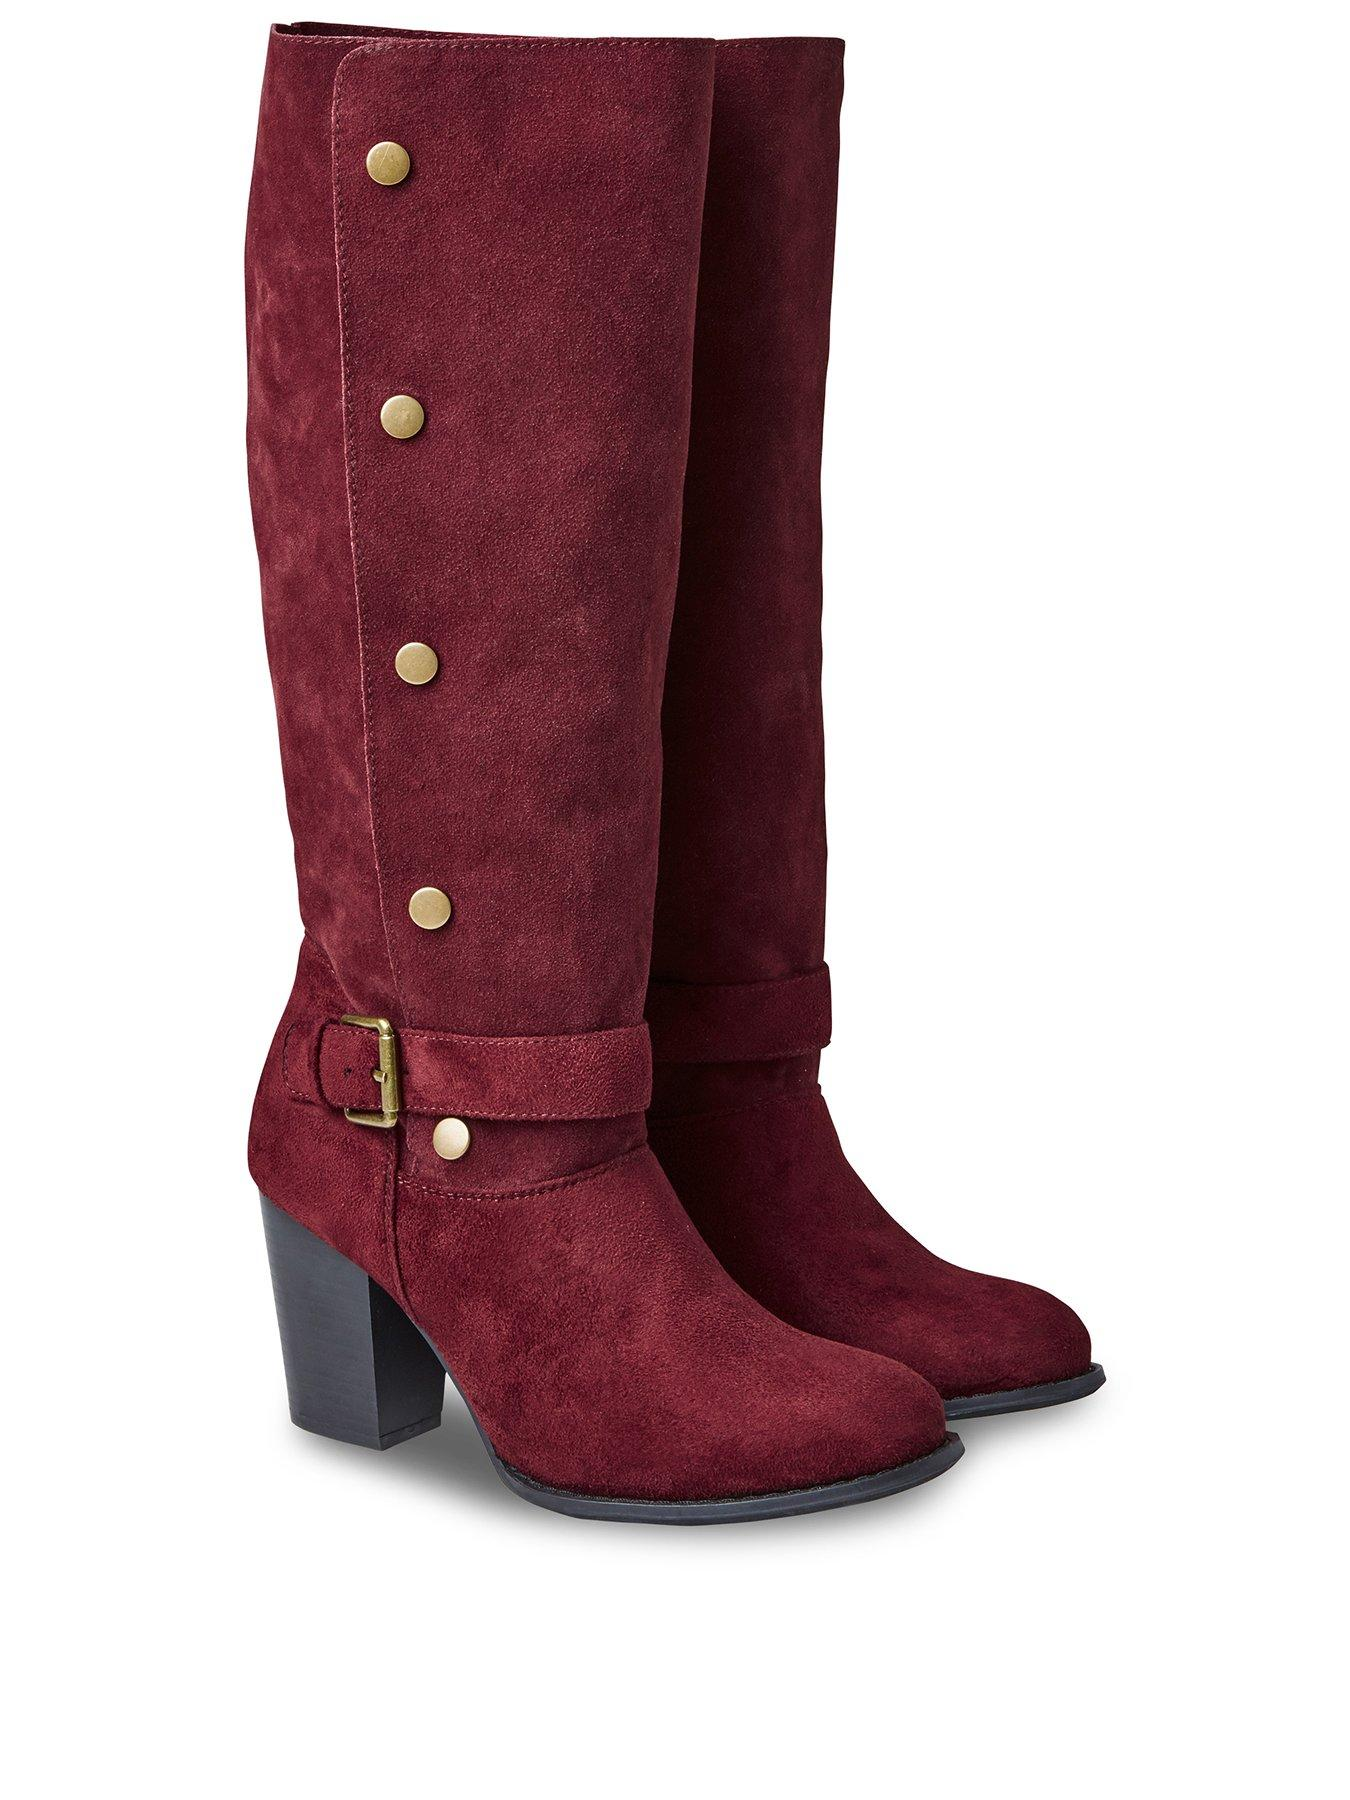 Ladies Womens Winter Block Mid Heel Gold Buckle Casual Knee High Boots Size 3-8